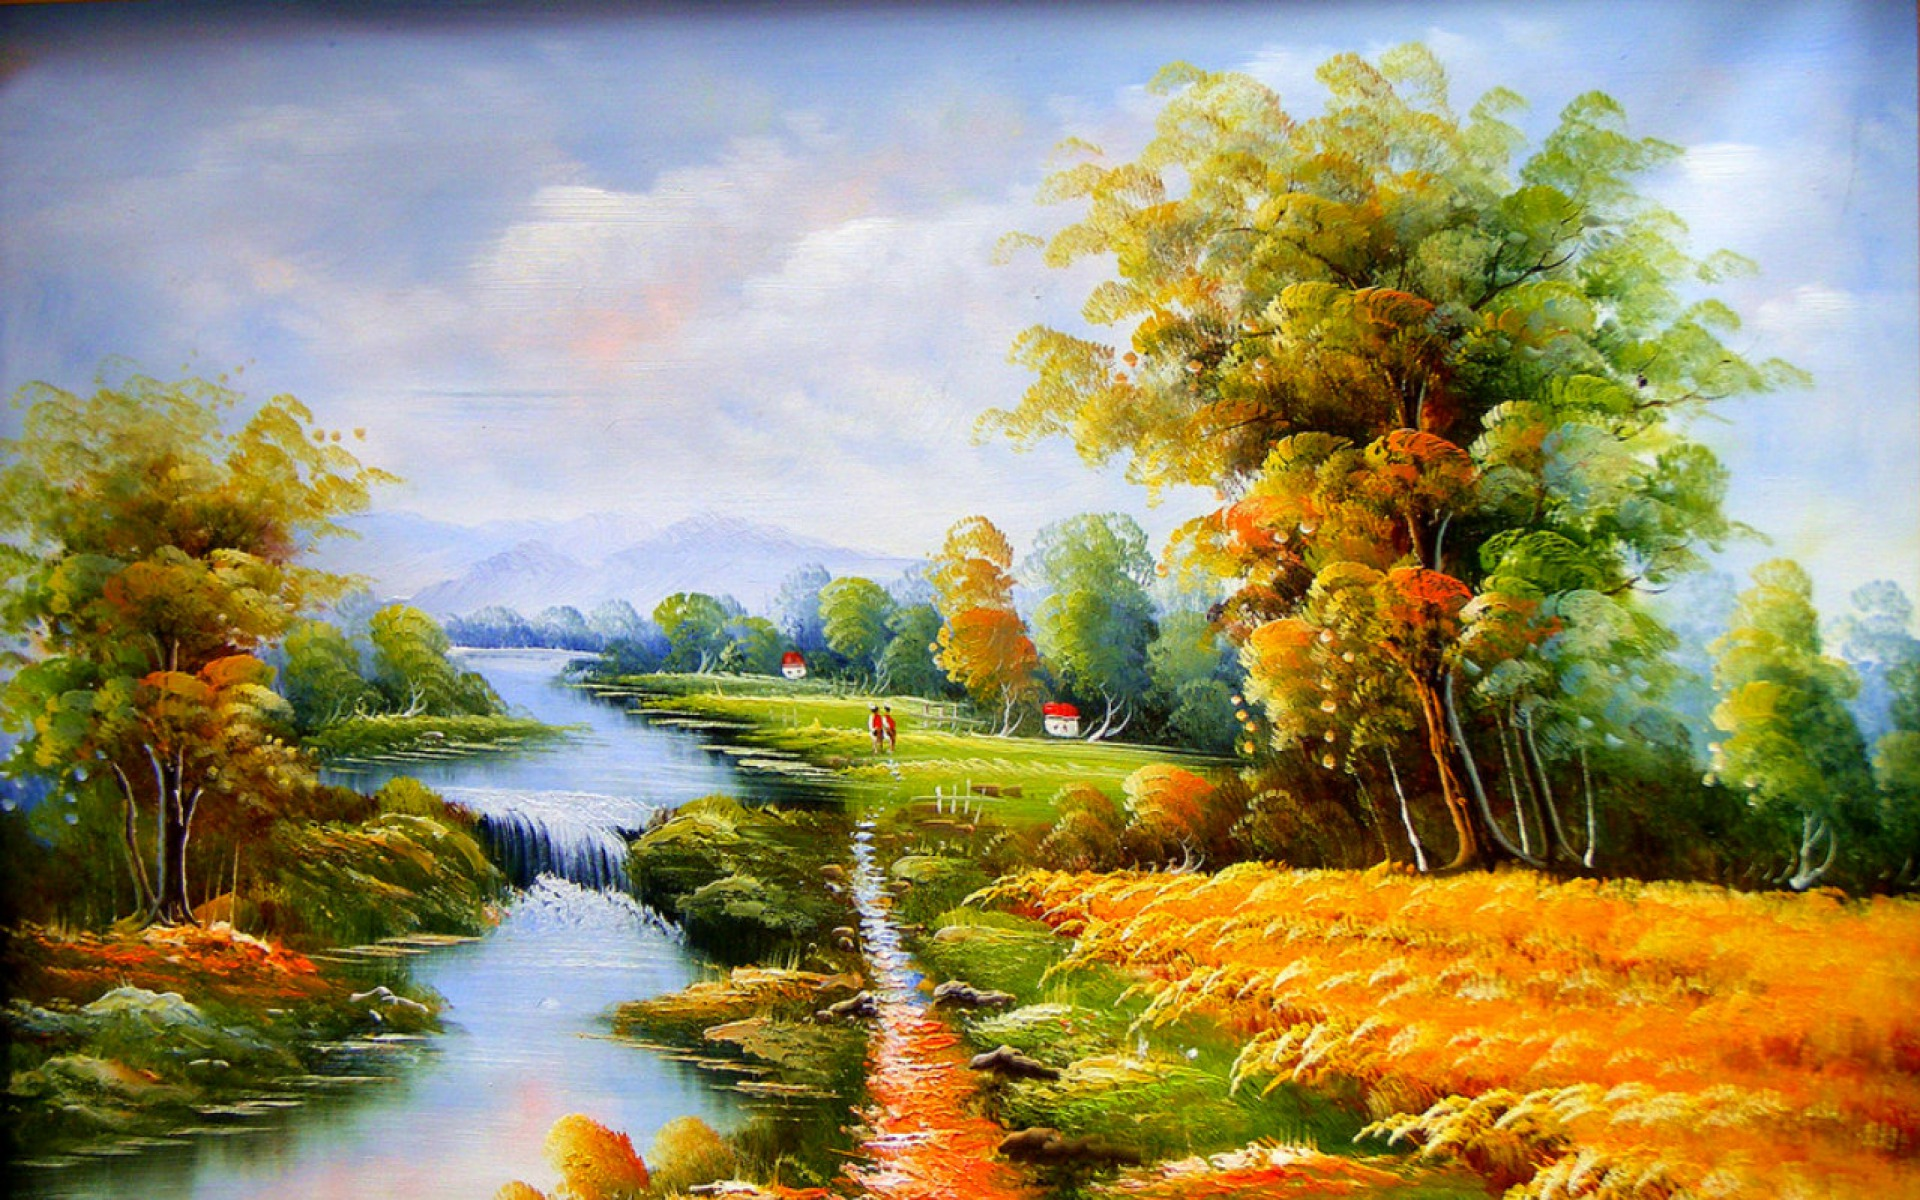 Calico Trees River Field Kids wallpapers